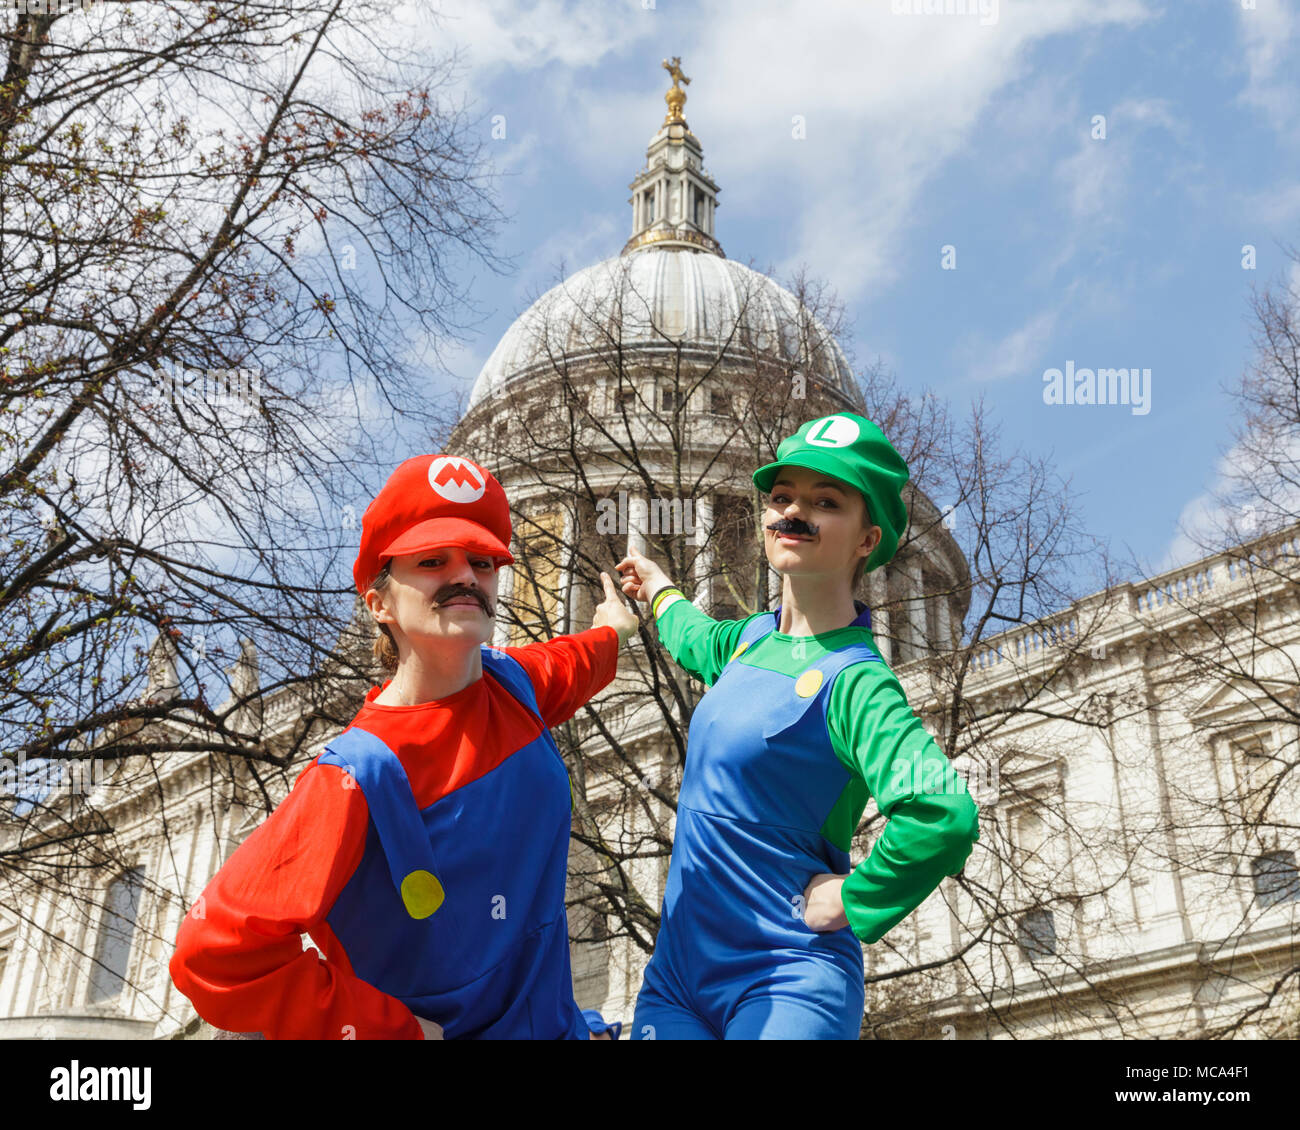 City Of London London 14th April 2018 The Super Mario Brothers